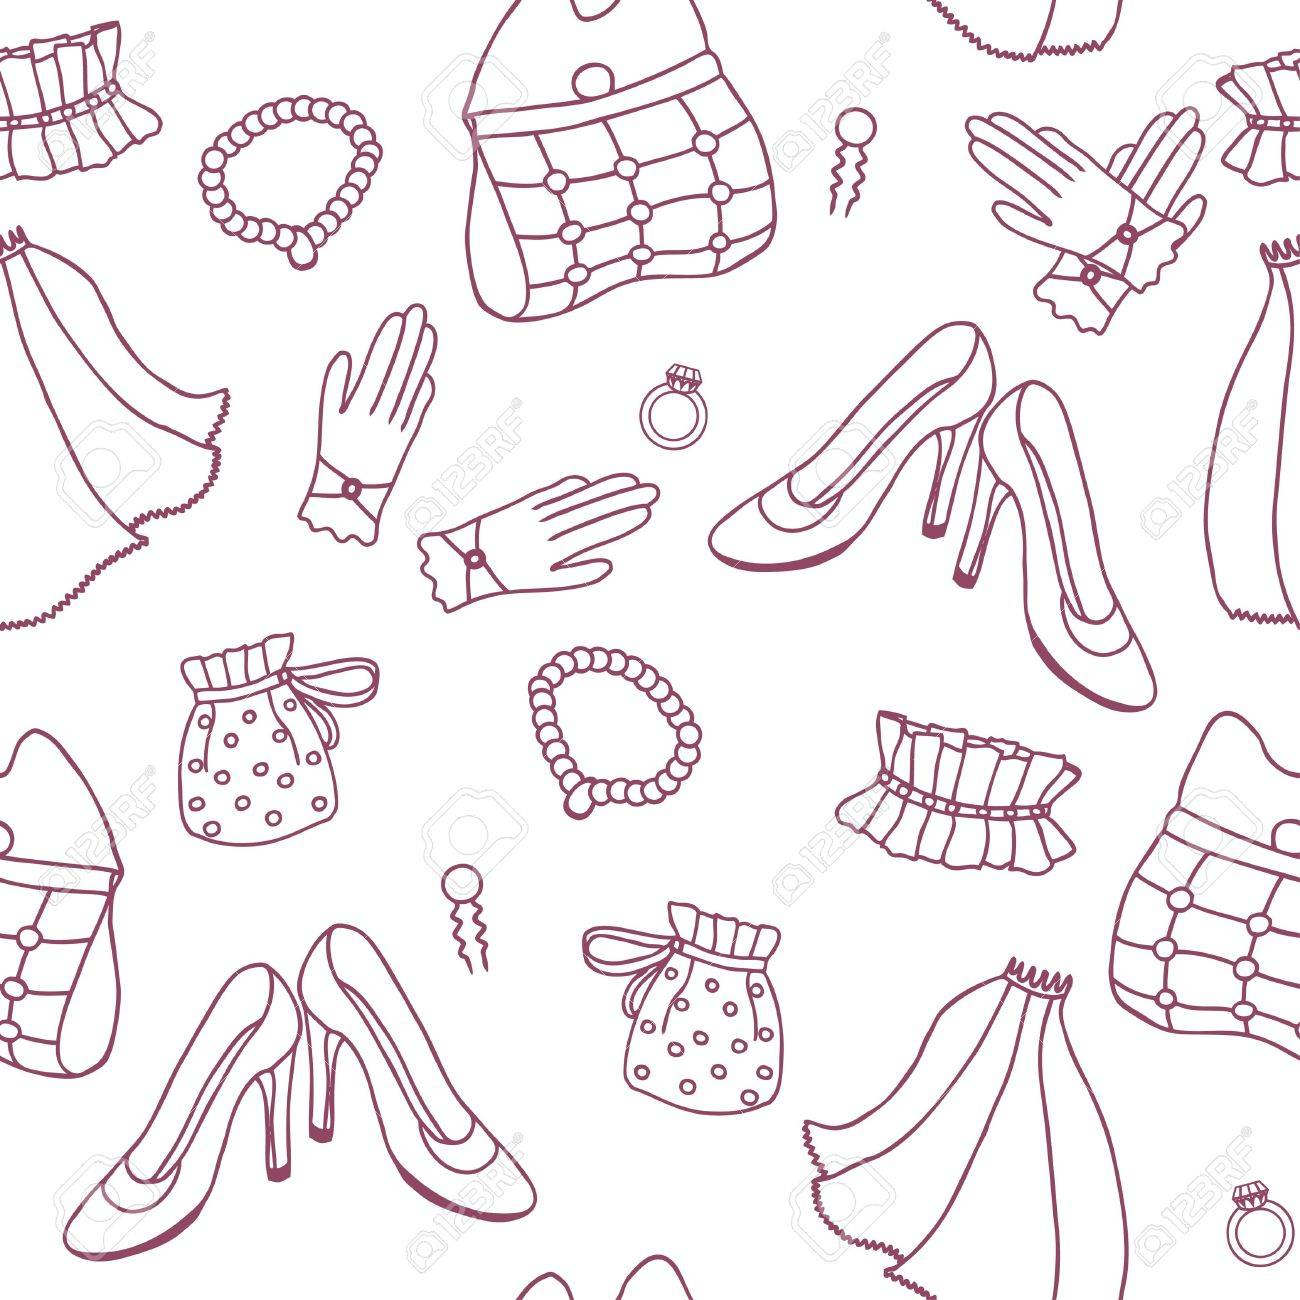 Wedding seamless pattern in simple style Stock Vector - 12490144